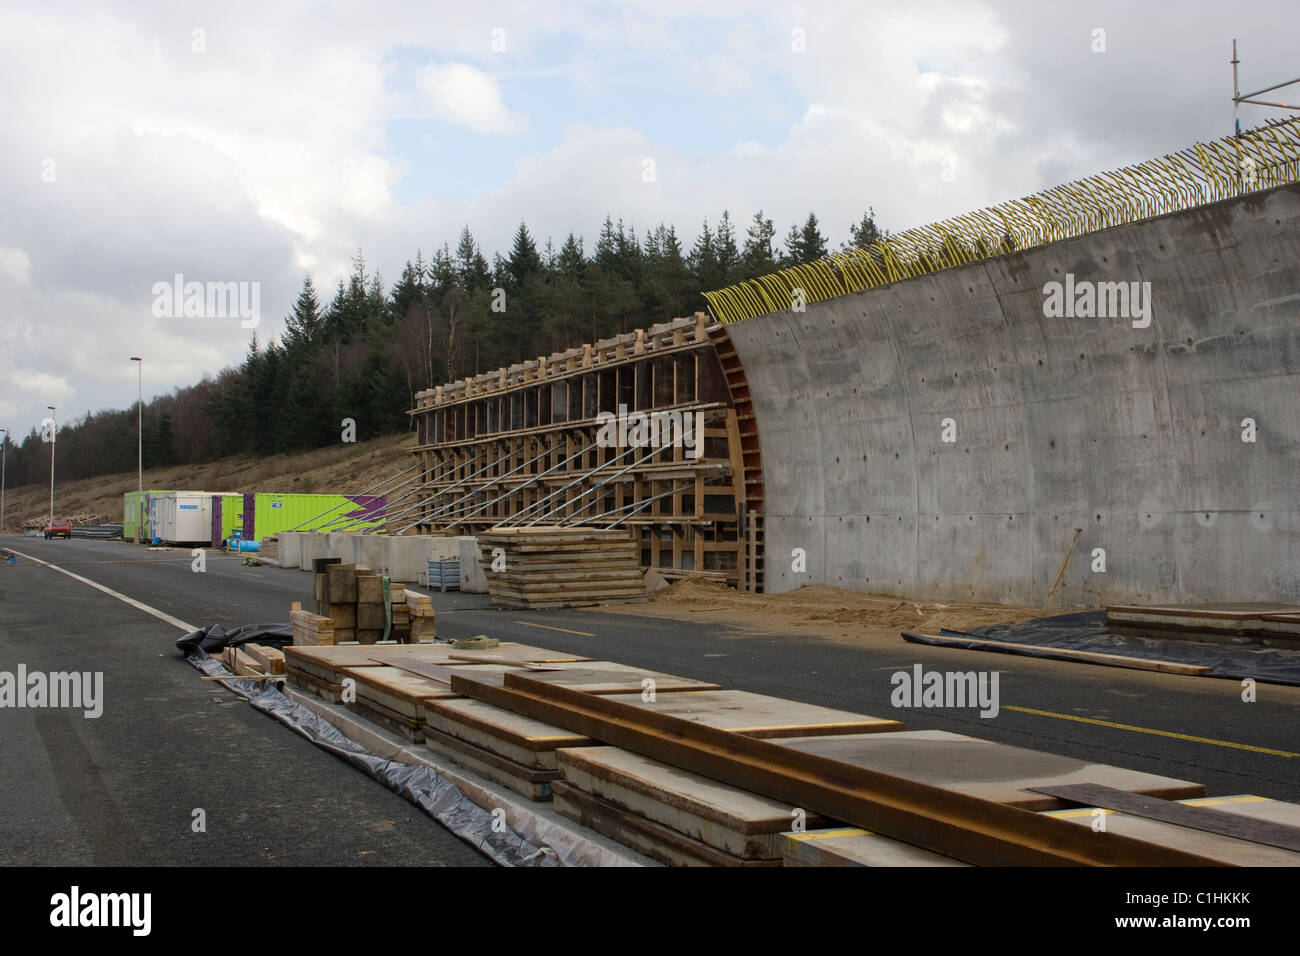 Construction of a concrete wall of the ecoduct